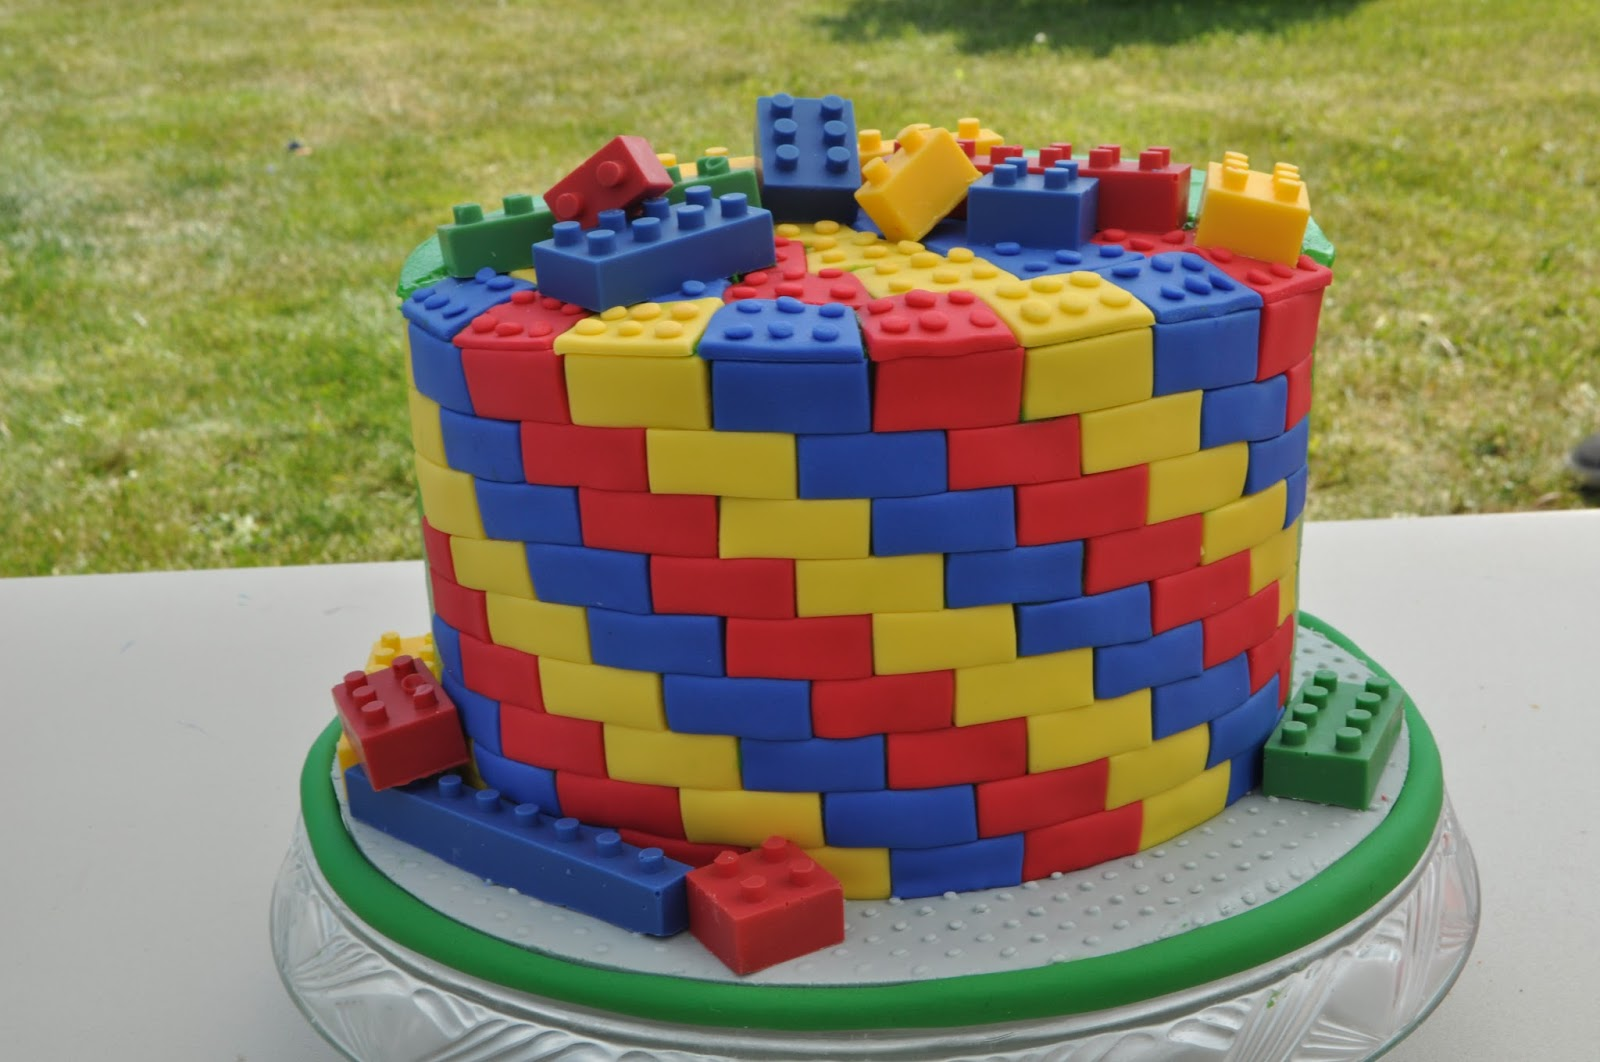 Peach Of Cake Lego Birthday Cake